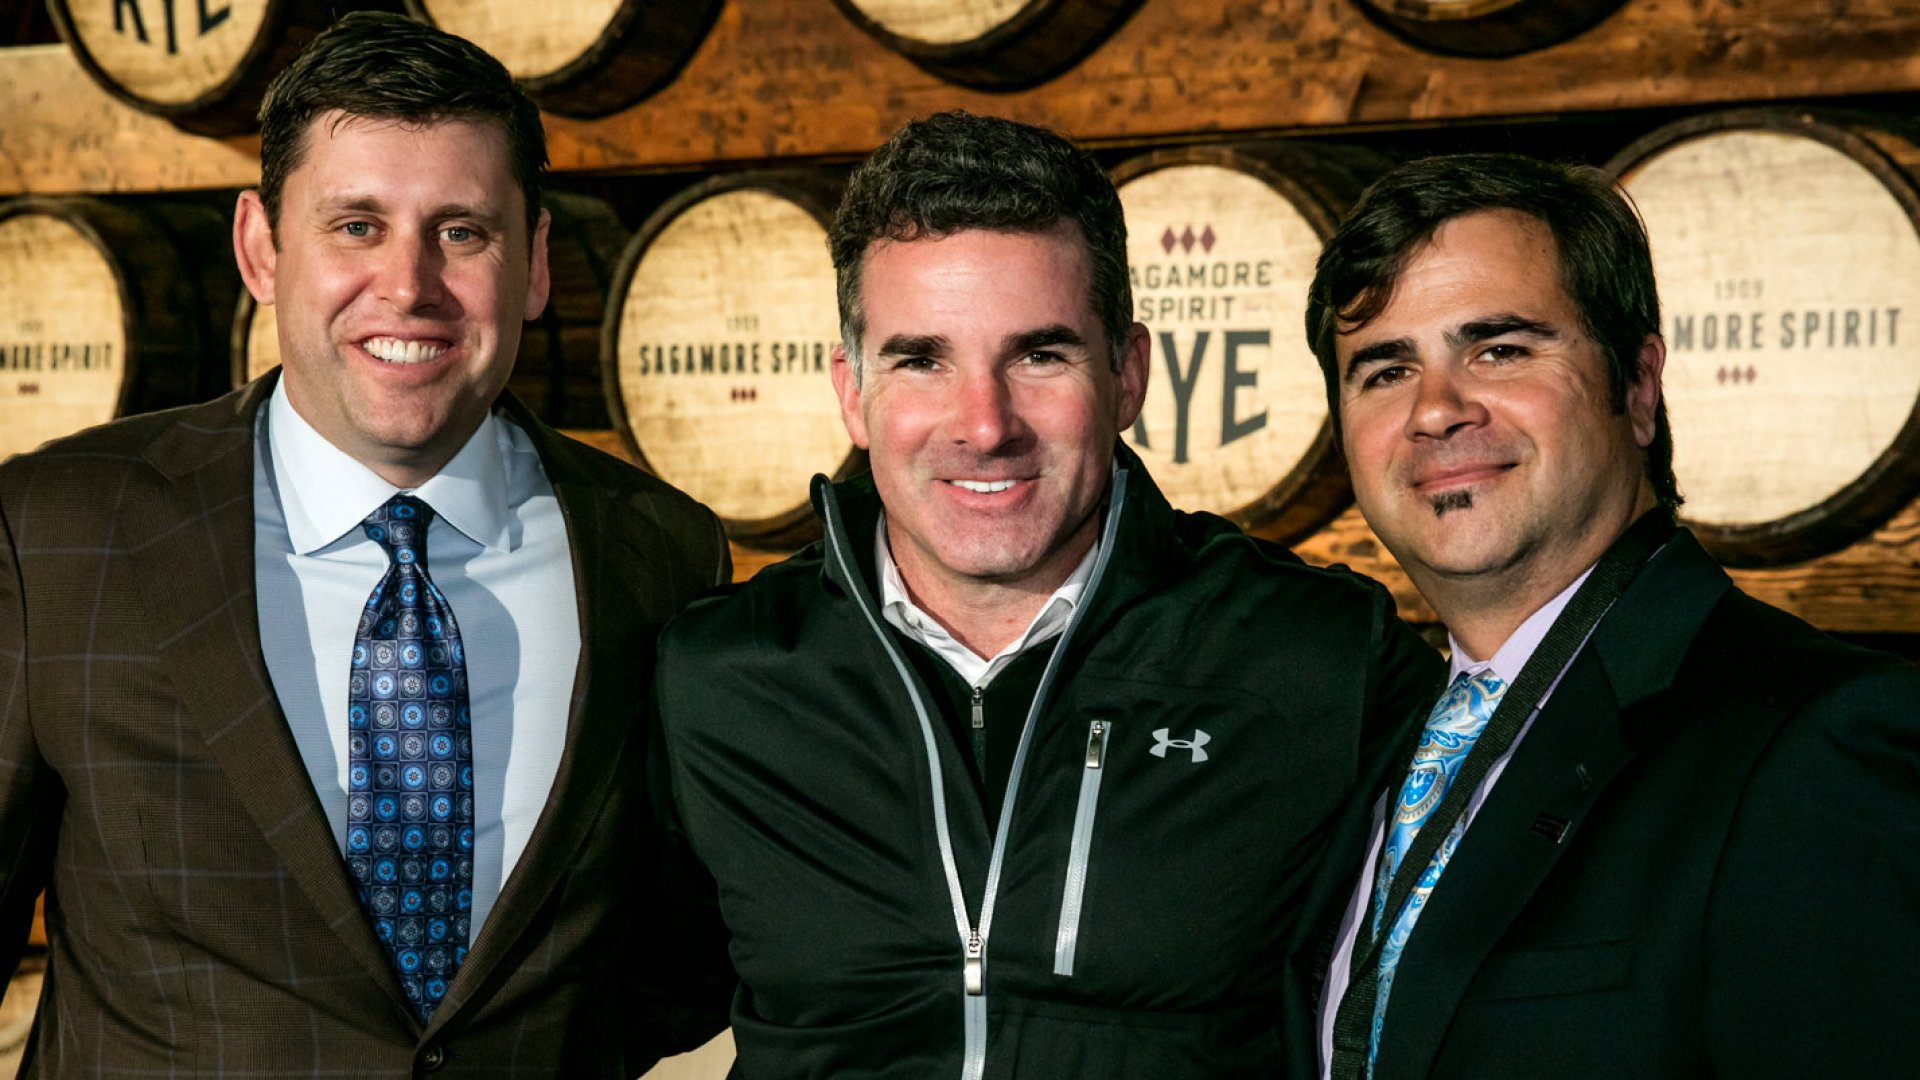 From left: Bill McDermond, co-founder of Sagamore Spirit, Kevin Plank, and Brian Treacy, president of Sagamore.